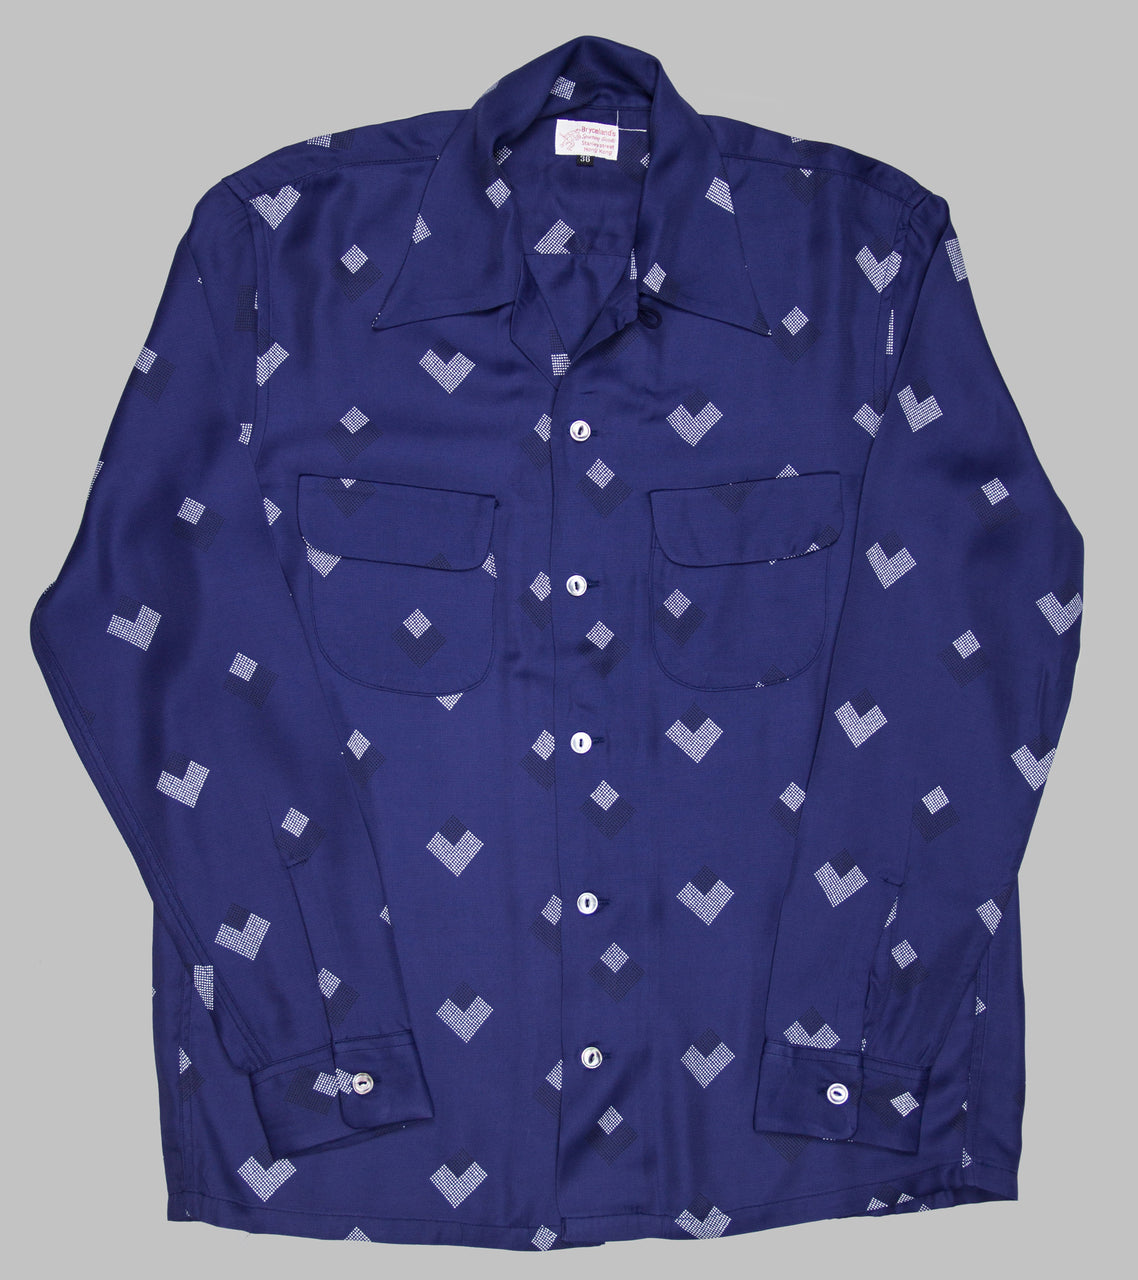 Bryceland's Rayon Shirt Diamond Blue